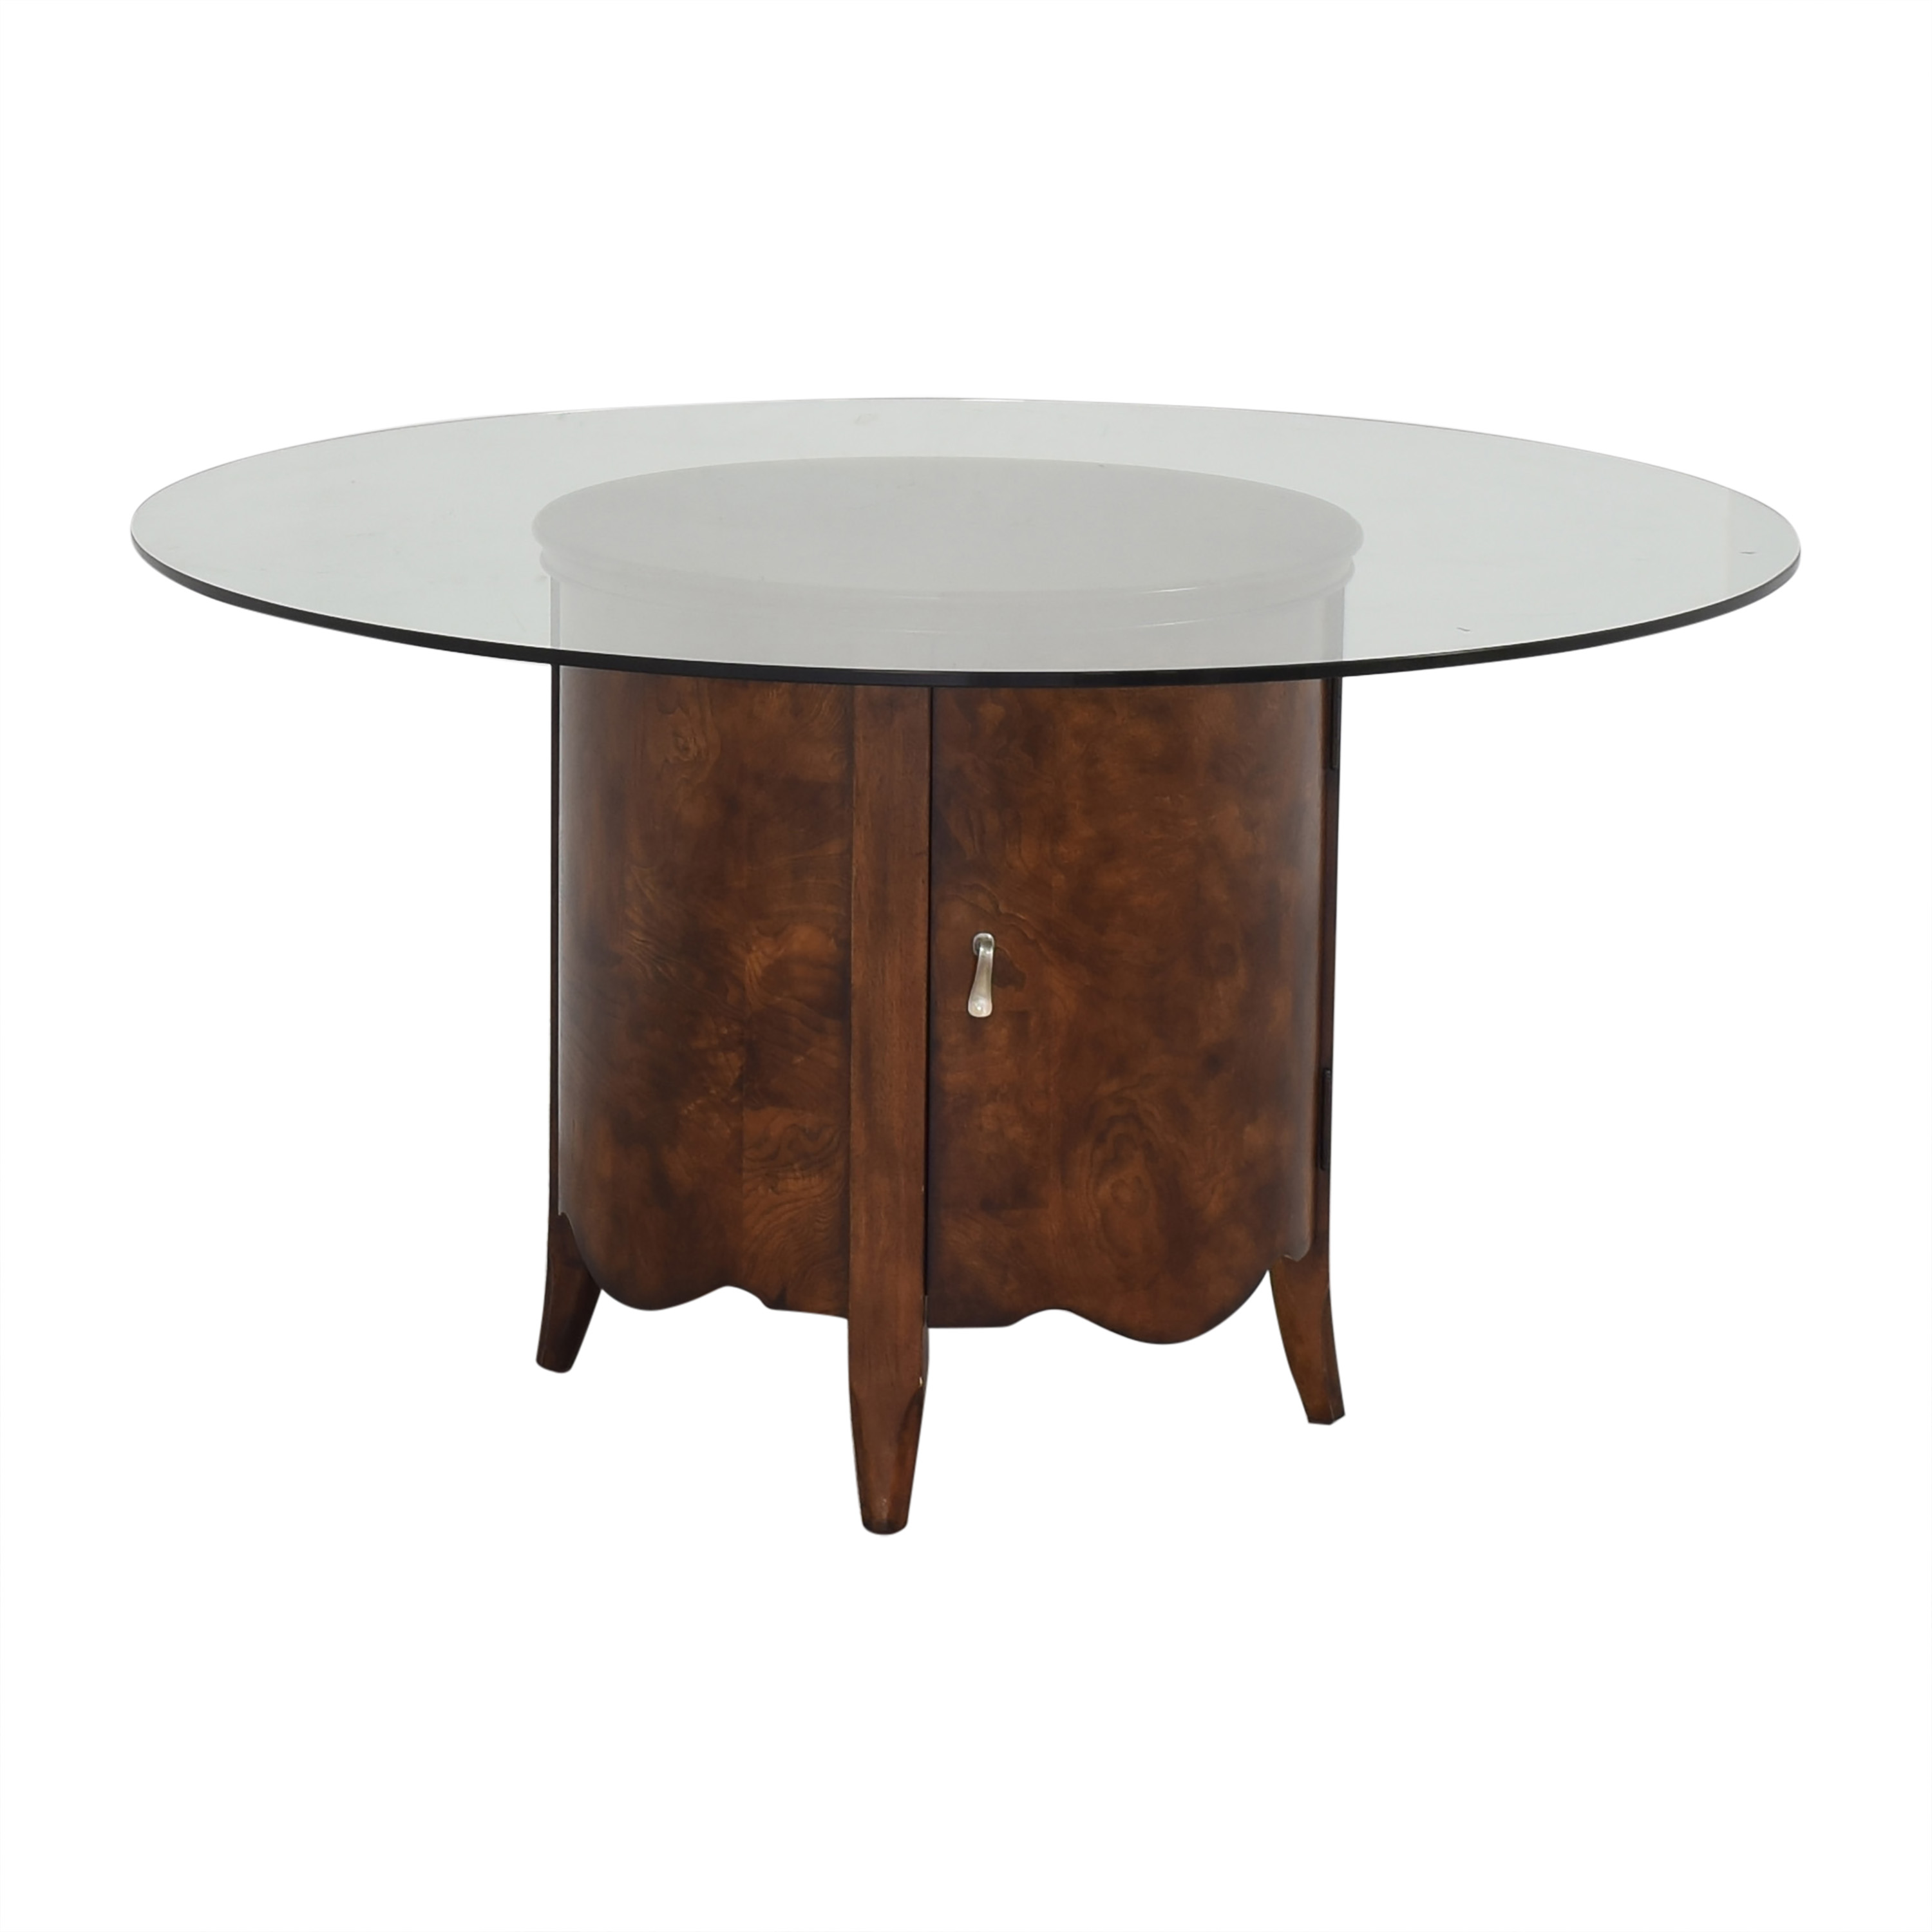 Raymour & Flanigan Raymour & Flanigan Round Dining Table coupon